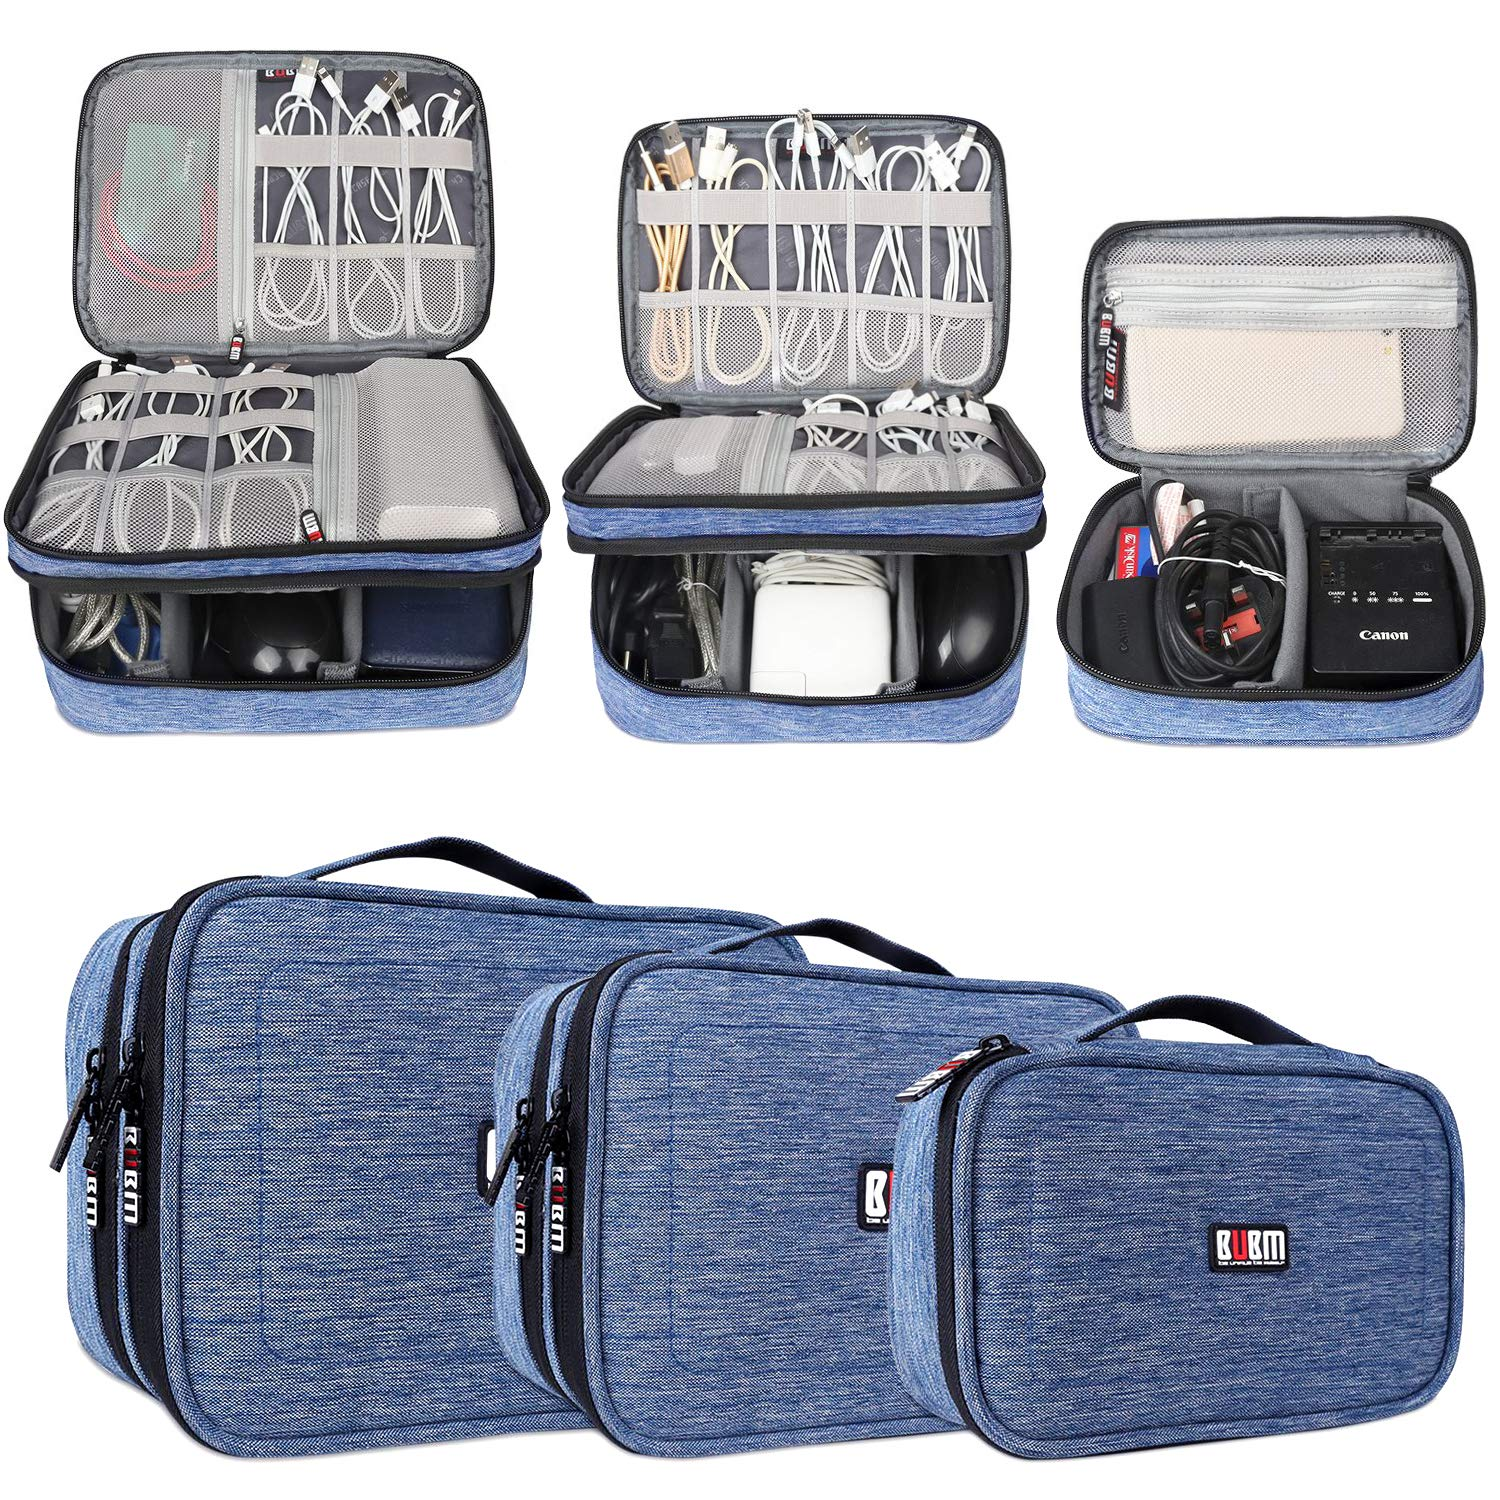 BUBM 3Pcs Universal Travel Cable Organizer Electronics Accessories Carry Bag for Cables, Cord, USB Flash Drive, Battery and More,Denim Blue by BUBM